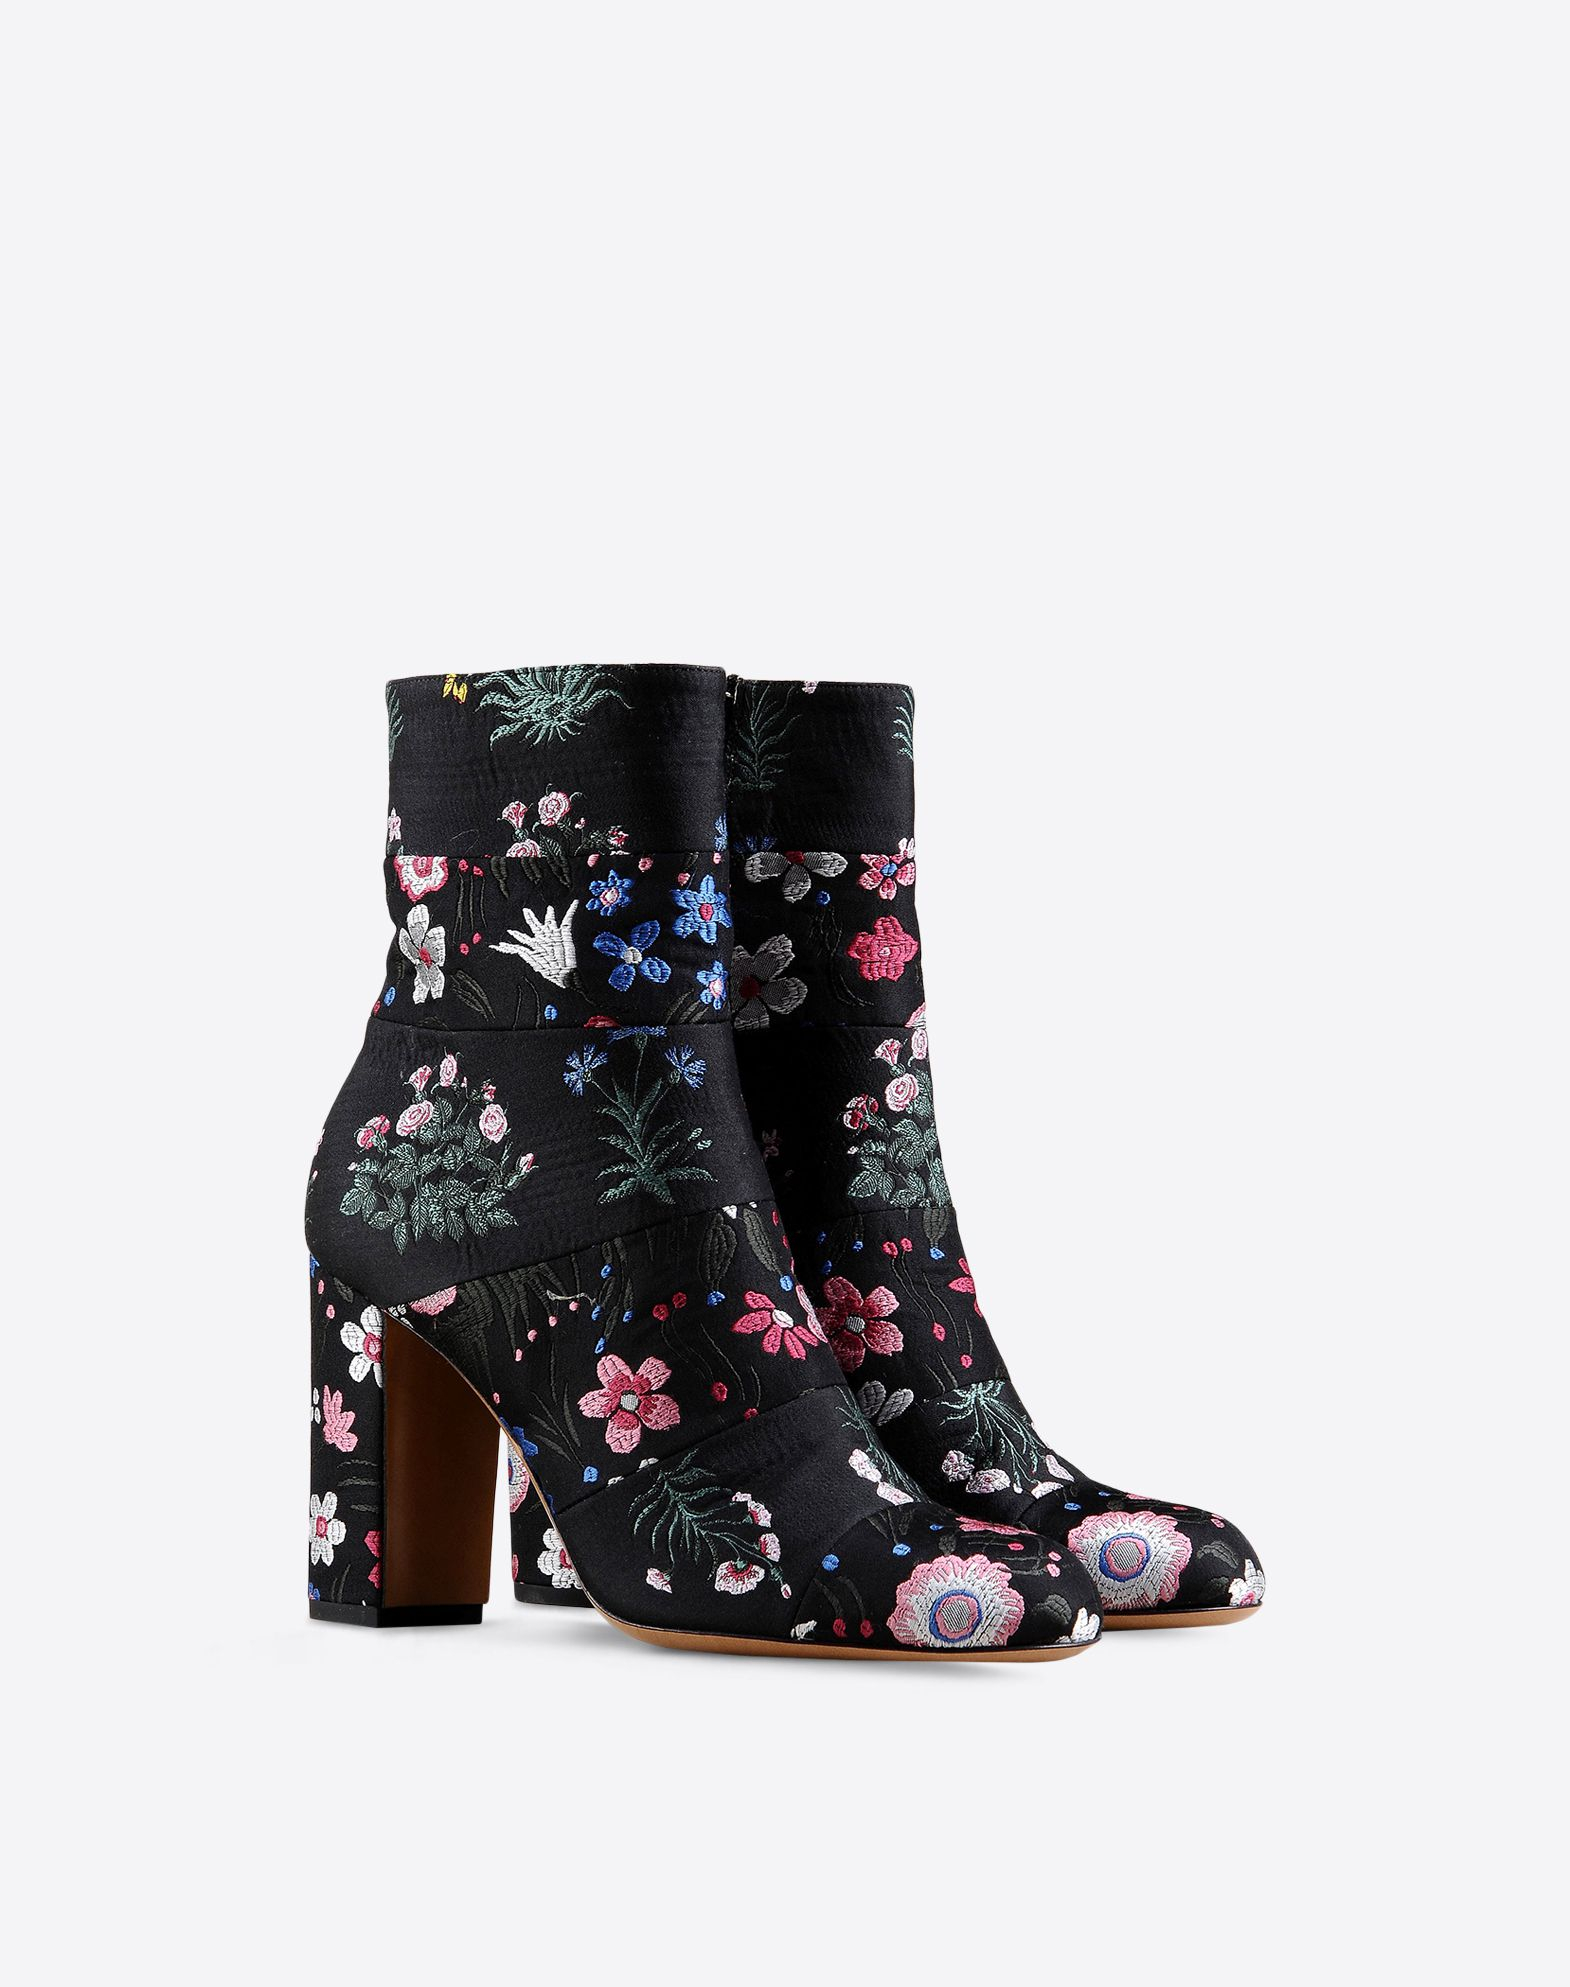 Valentino Embroidered Silk Ankle Boots In Floral Black